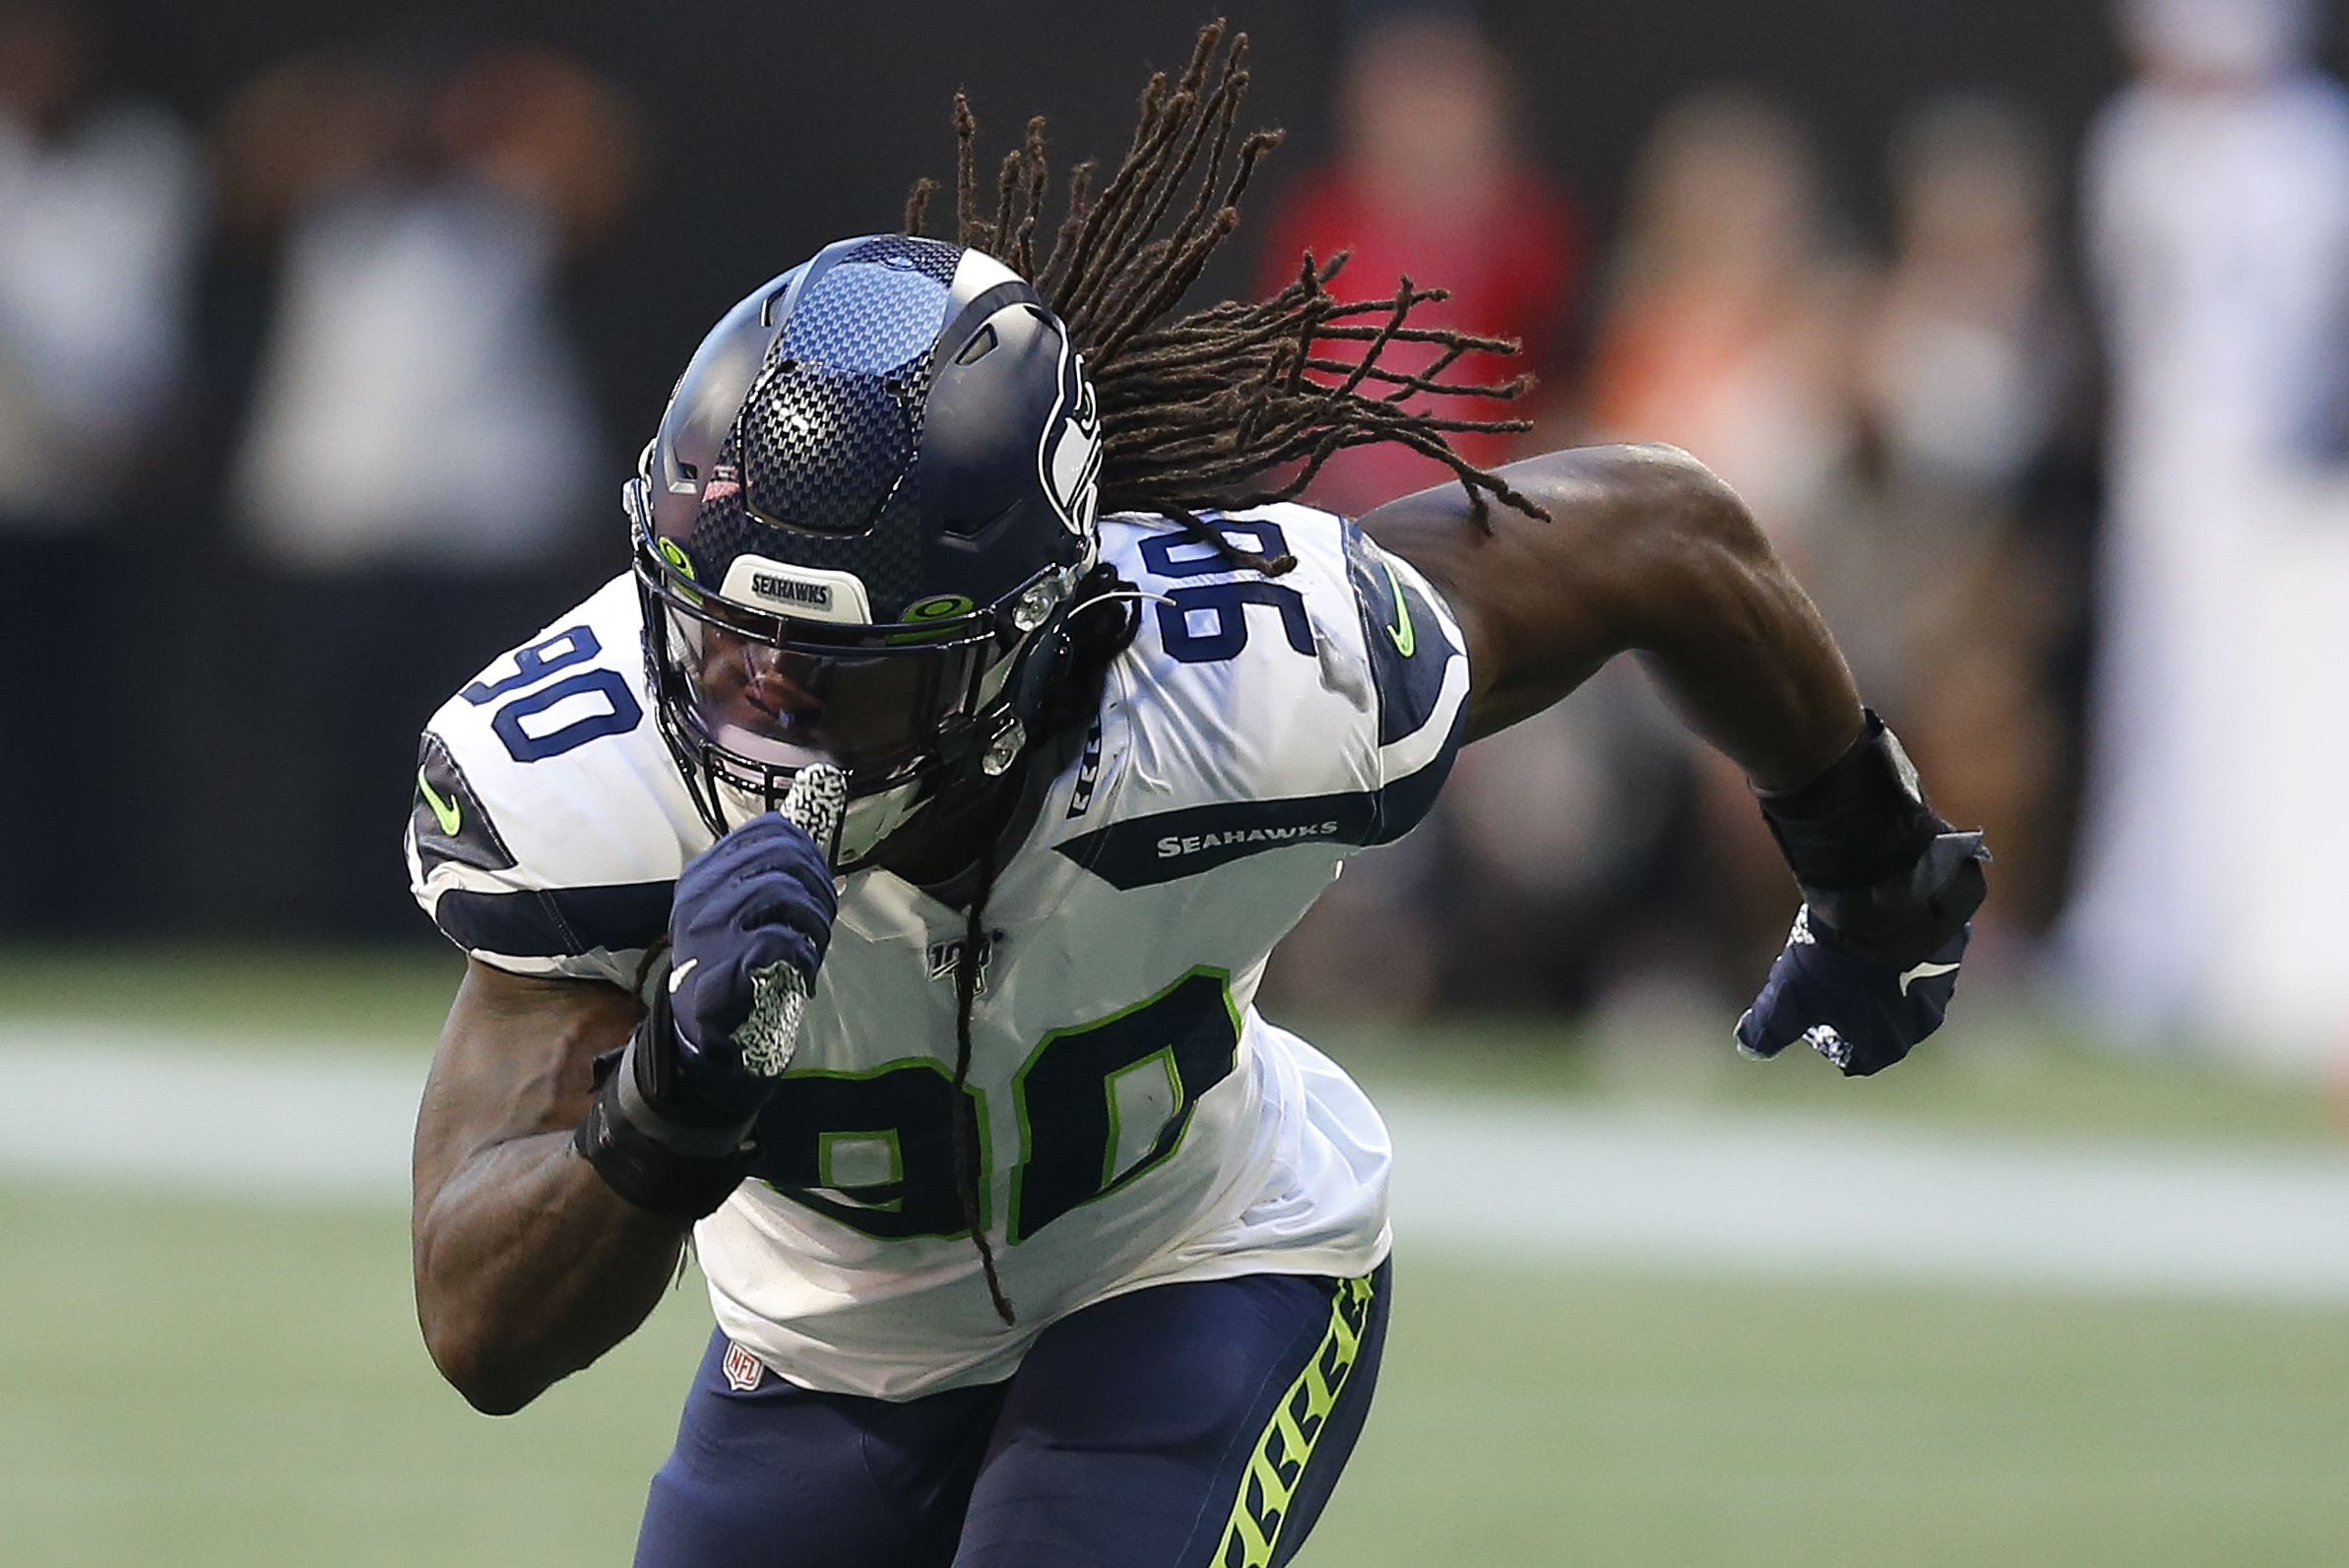 Jadeveon Clowney Rumors Teams Worried About Inconsistency Injuries Bleacher Report Latest News Videos And Highlights